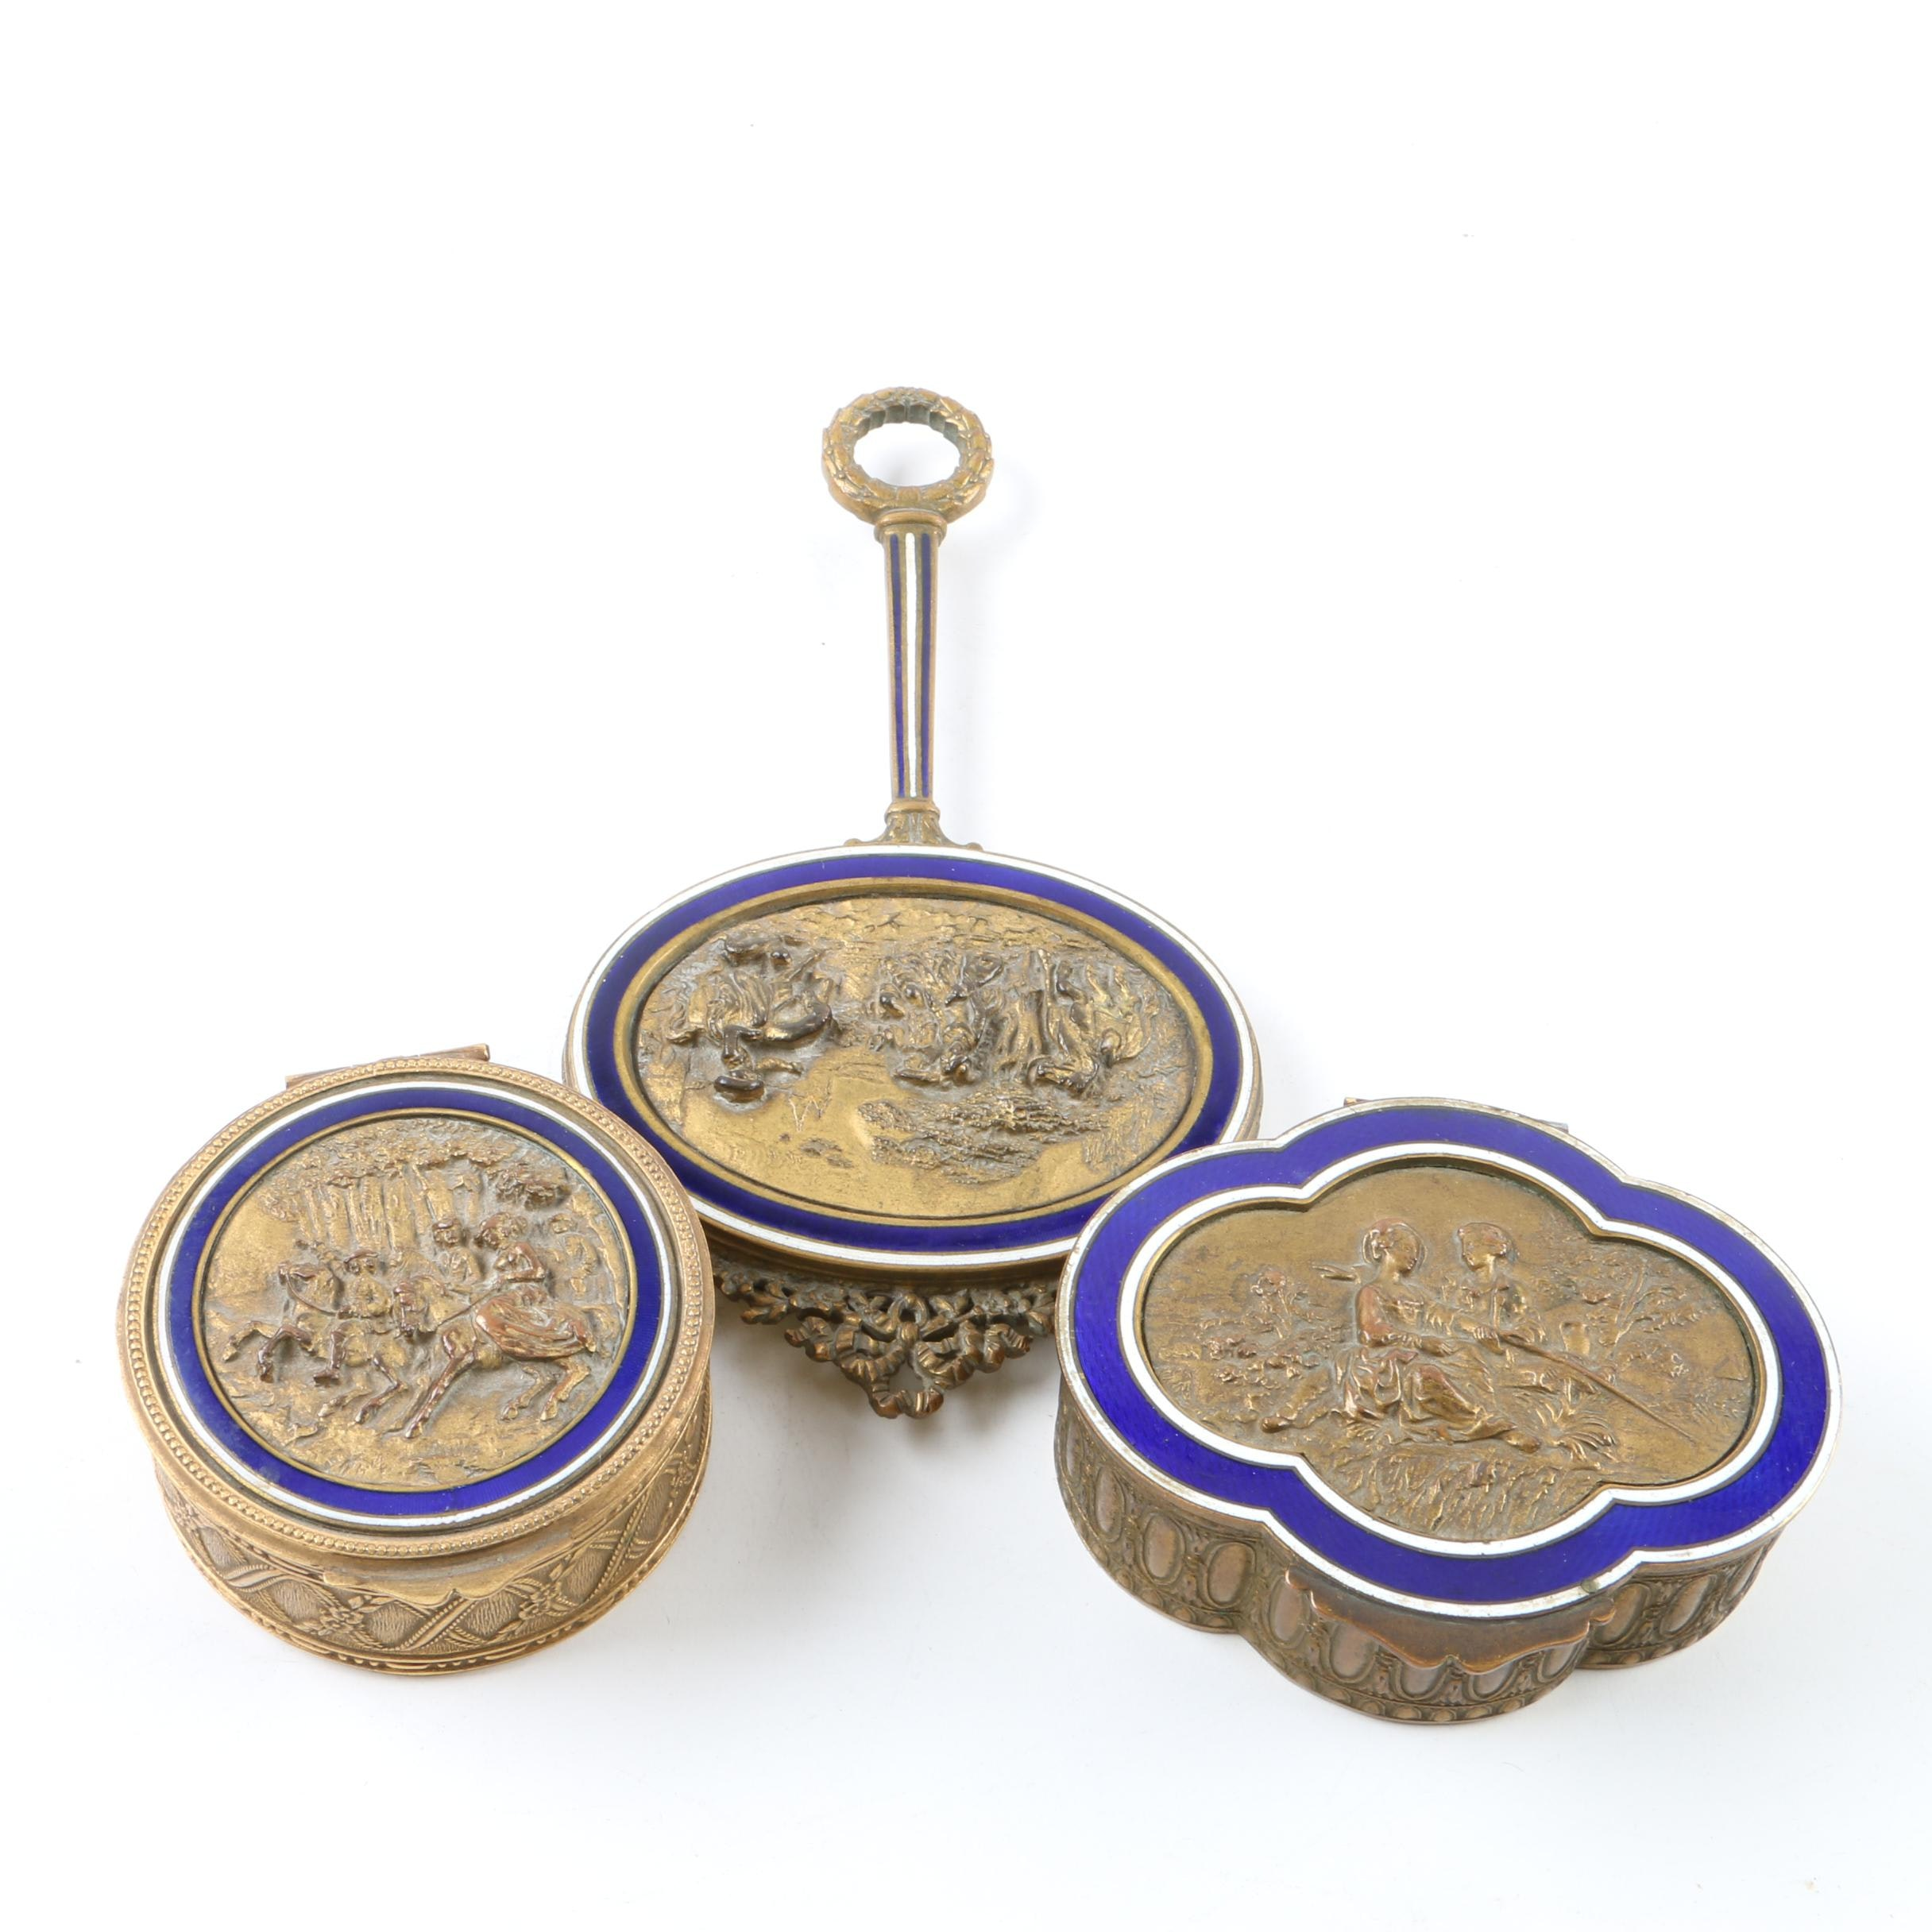 Vintage Rococo Style Brass and Guilloché Enameled Vanity Set